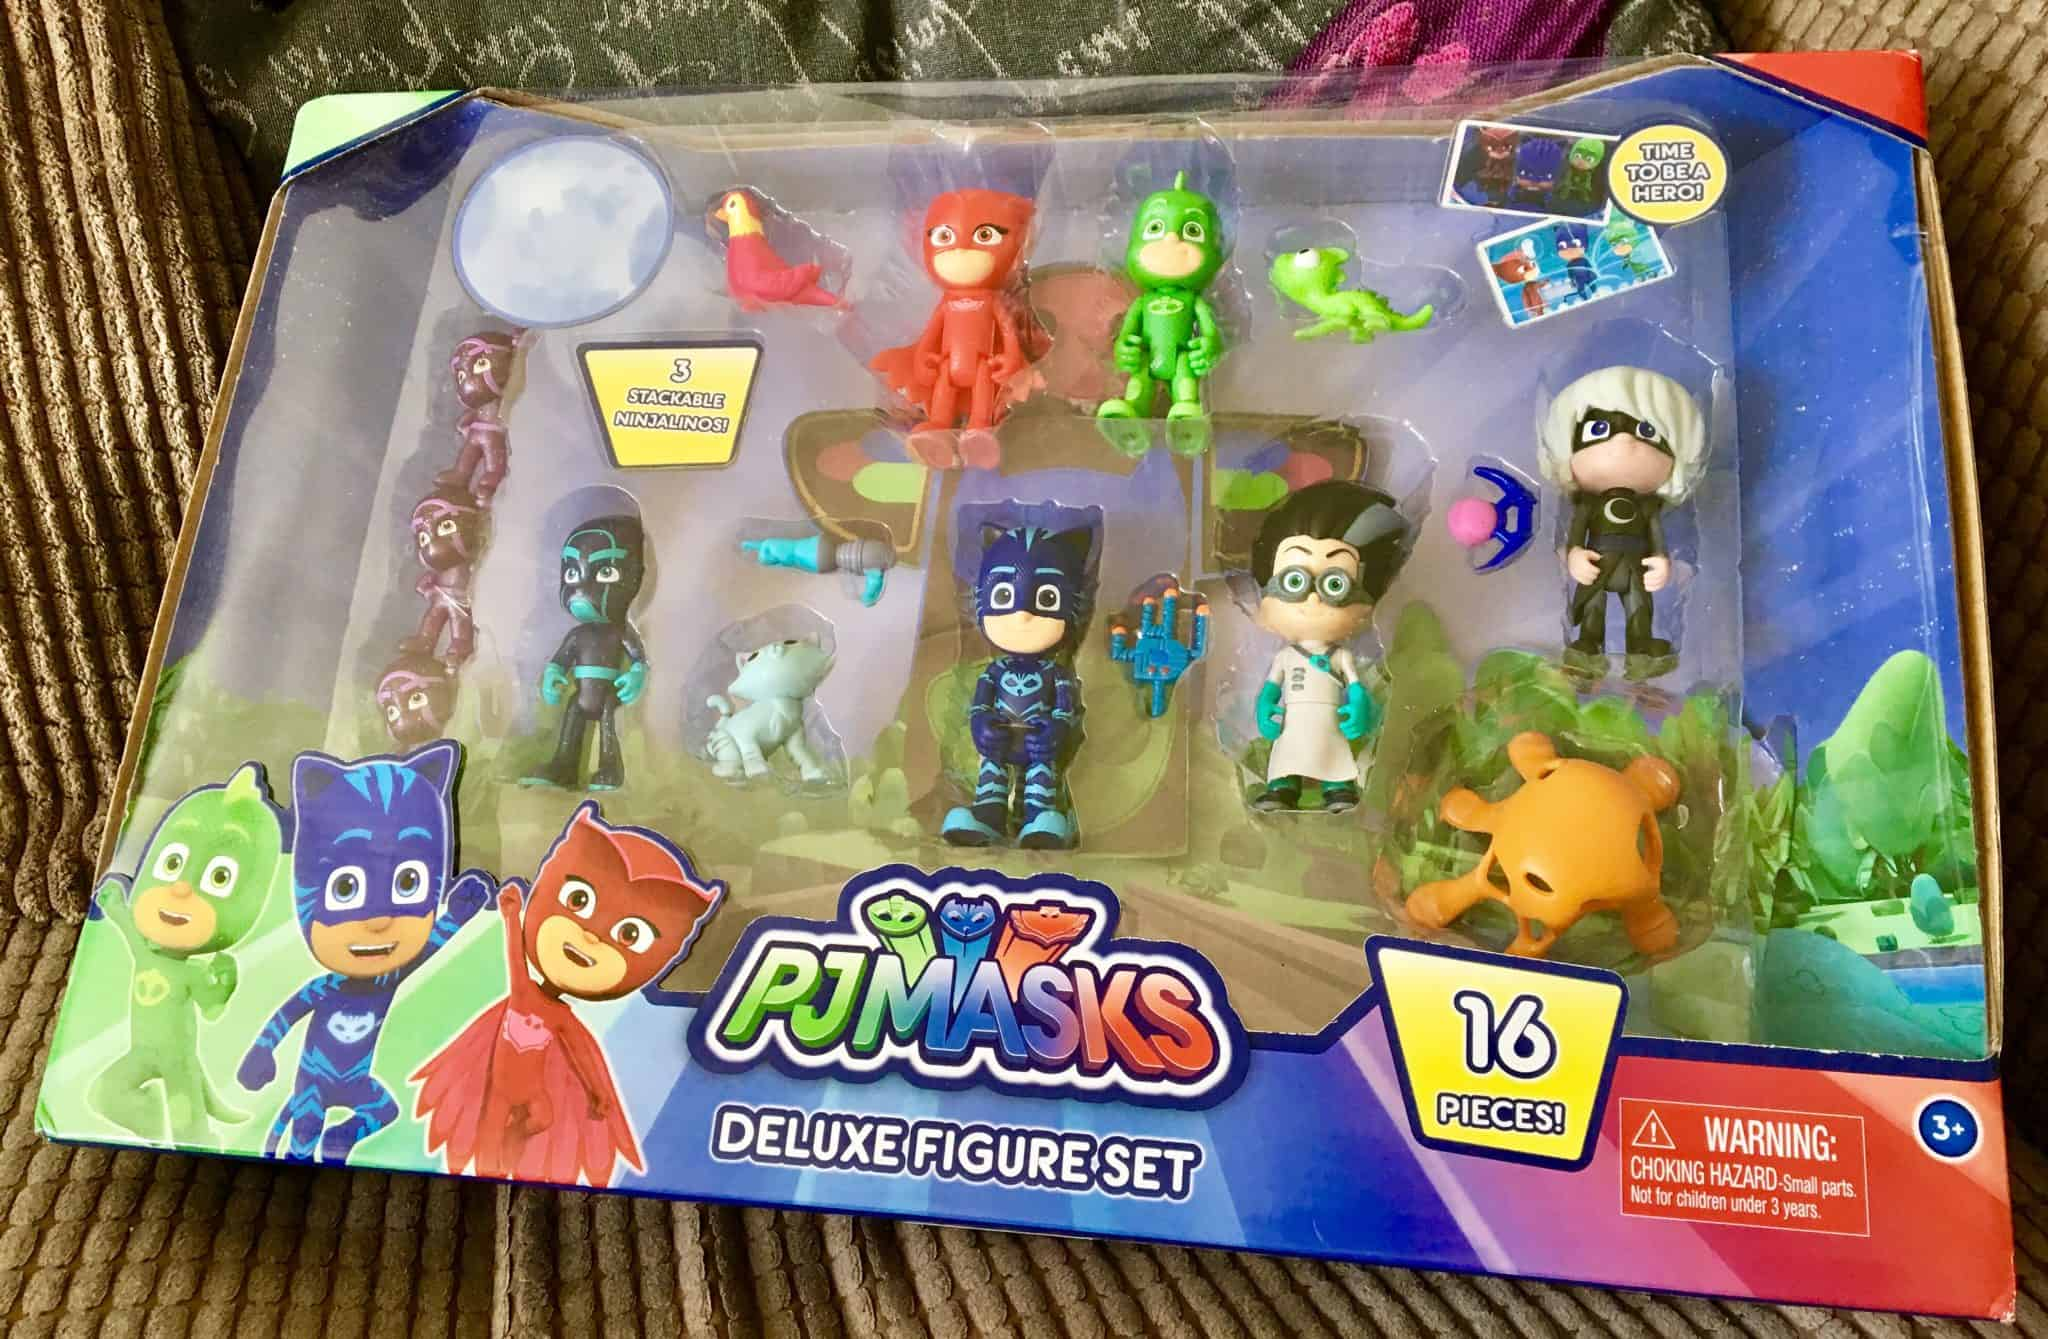 PJ Masks Deluxe 16 Figure Set